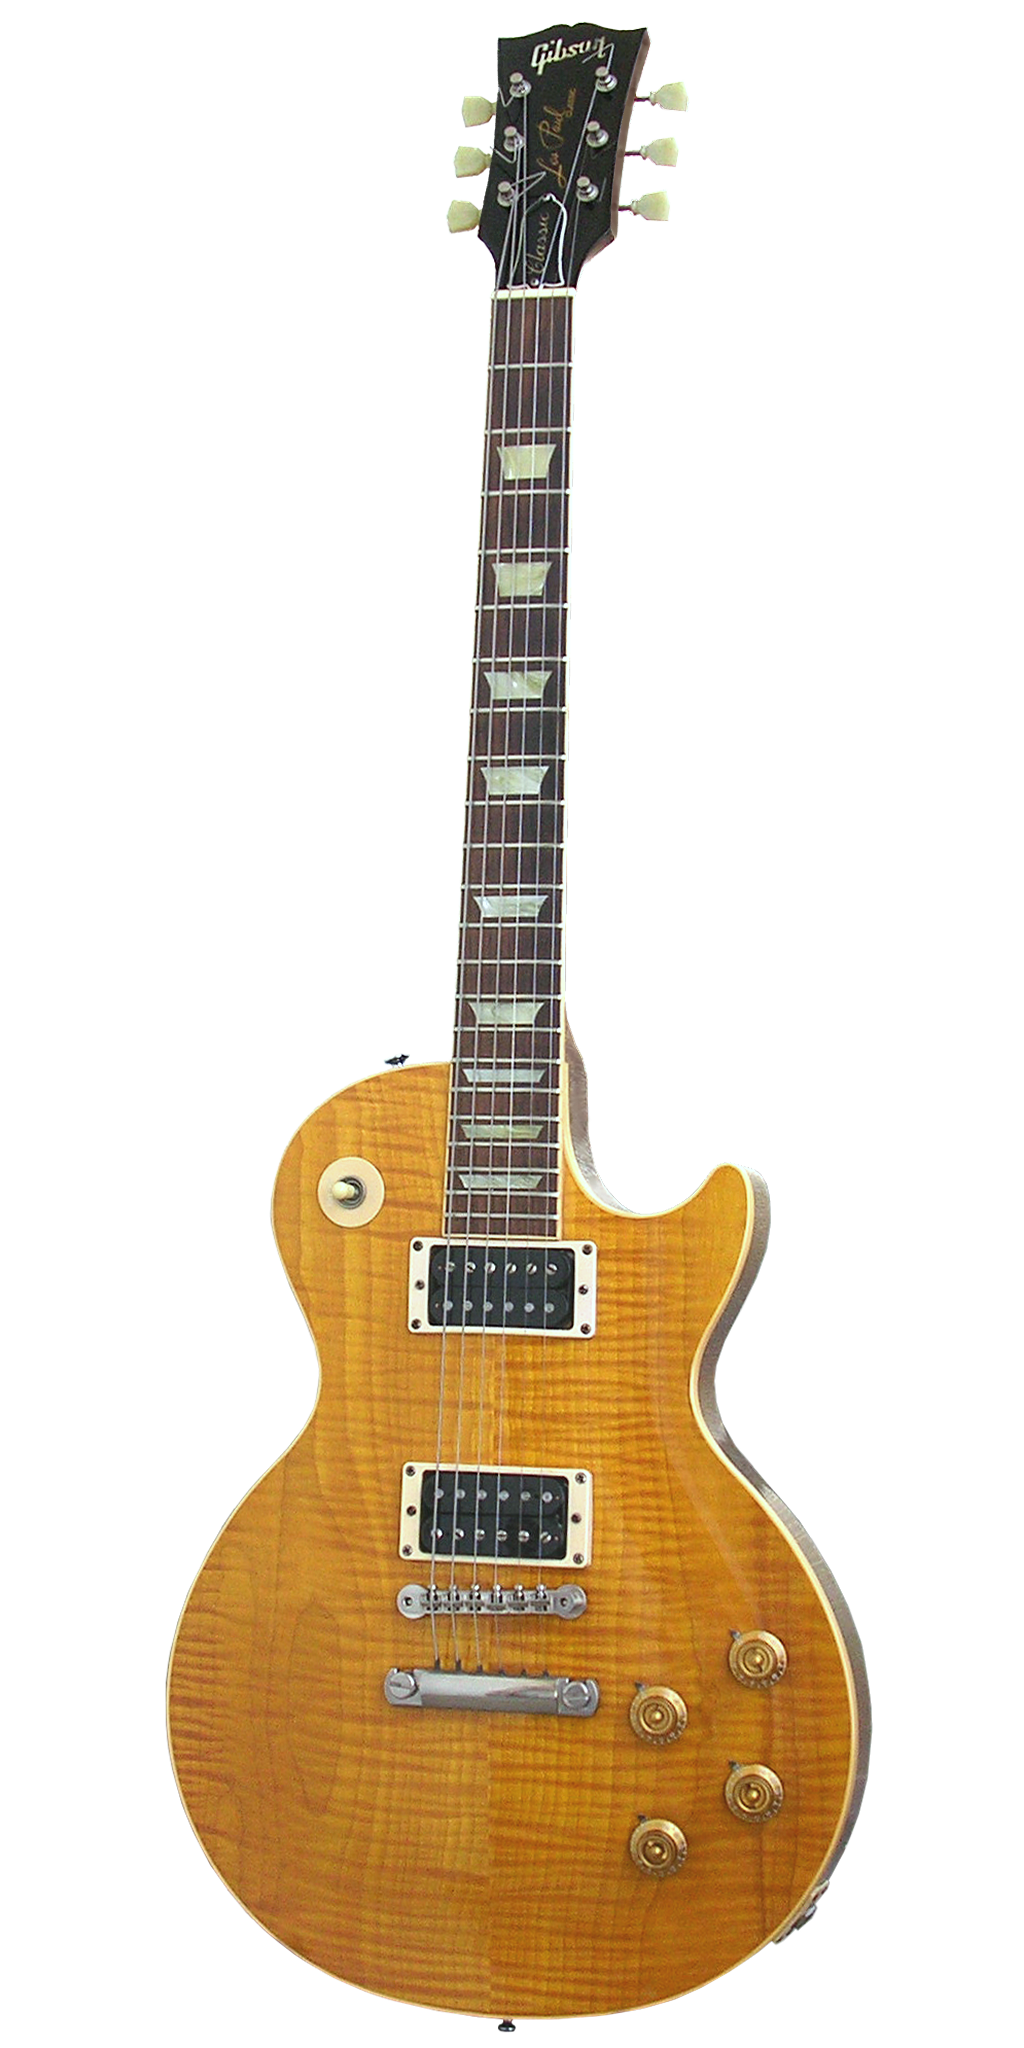 File:Gibson LP Classic.png - Gibson PNG